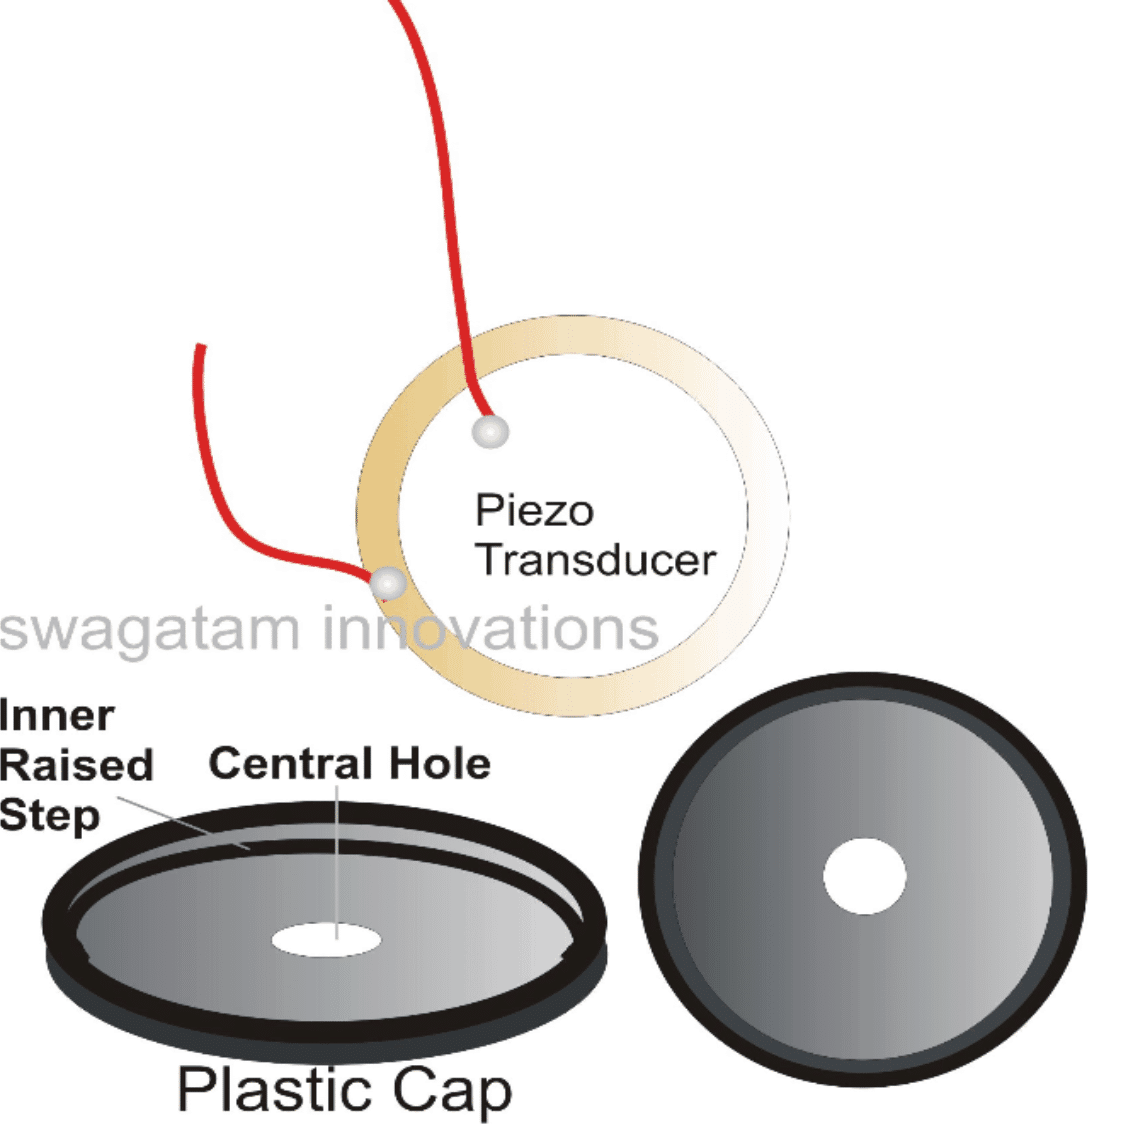 How to stick a piezo transducer on a base for maximum sound output